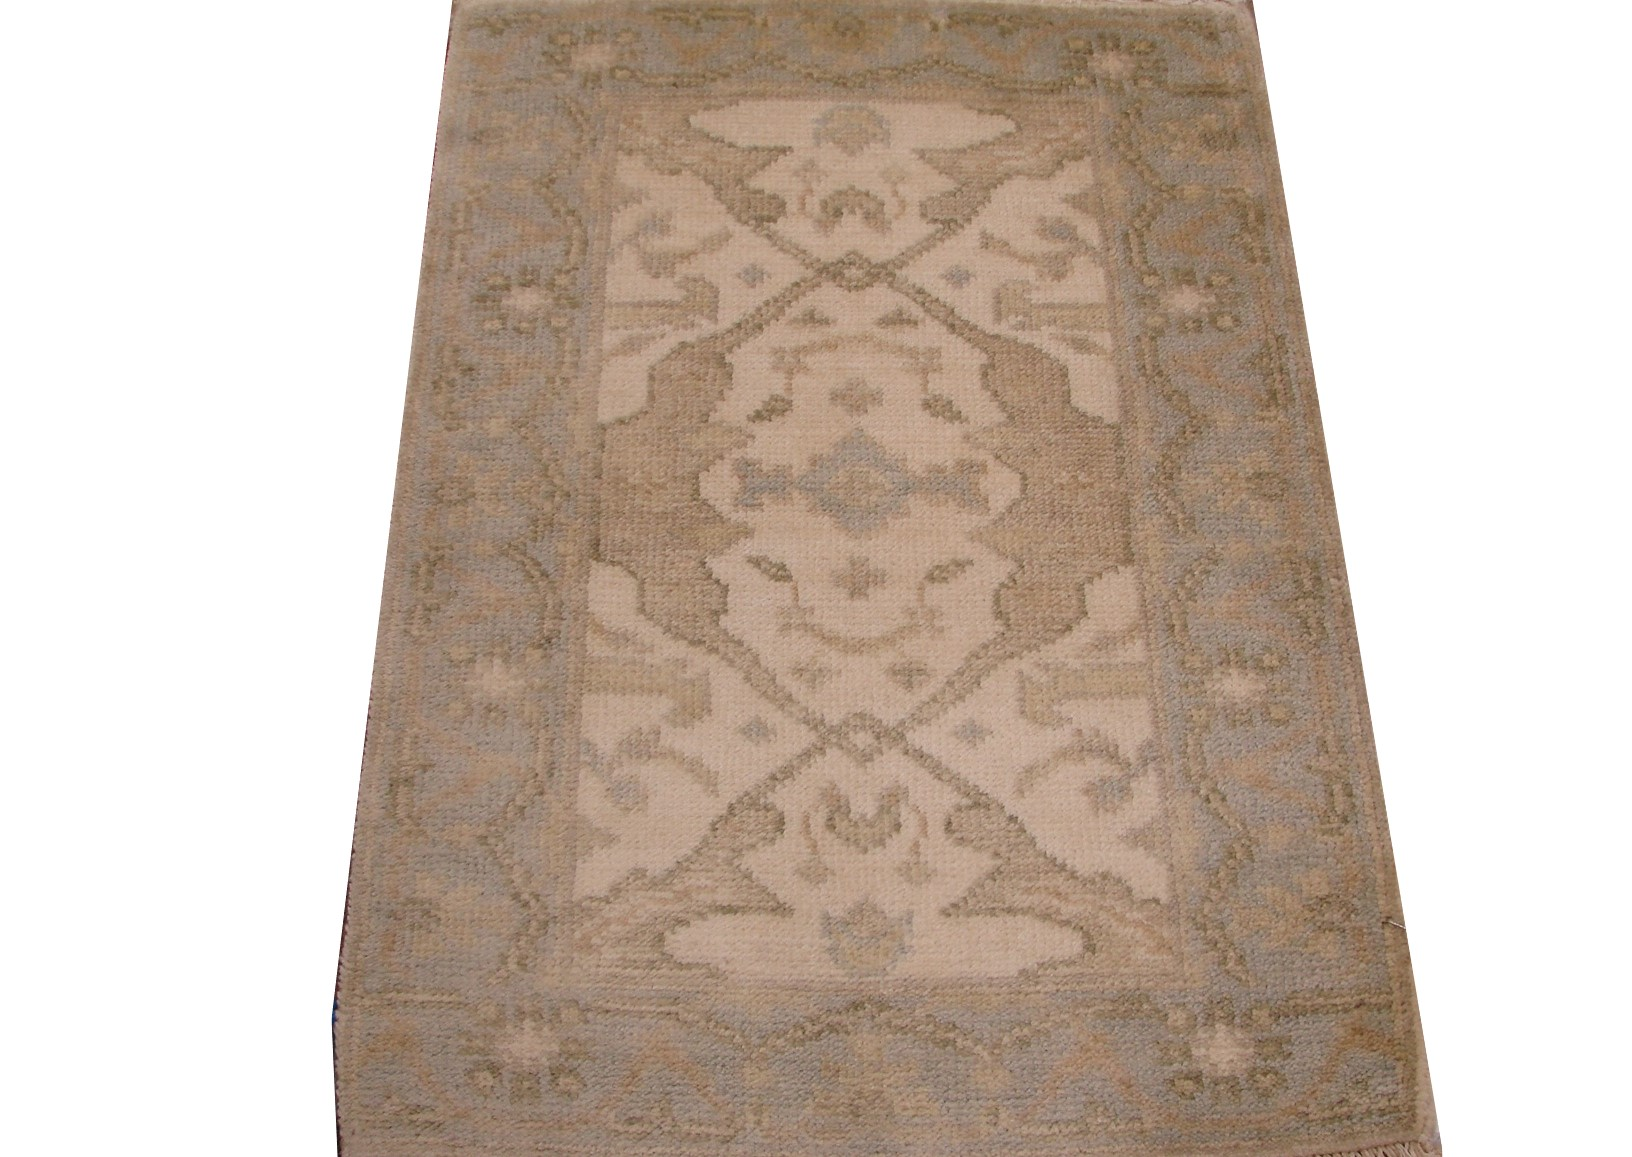 2X3 Oushak Hand Knotted Wool Area Rug - MR15796